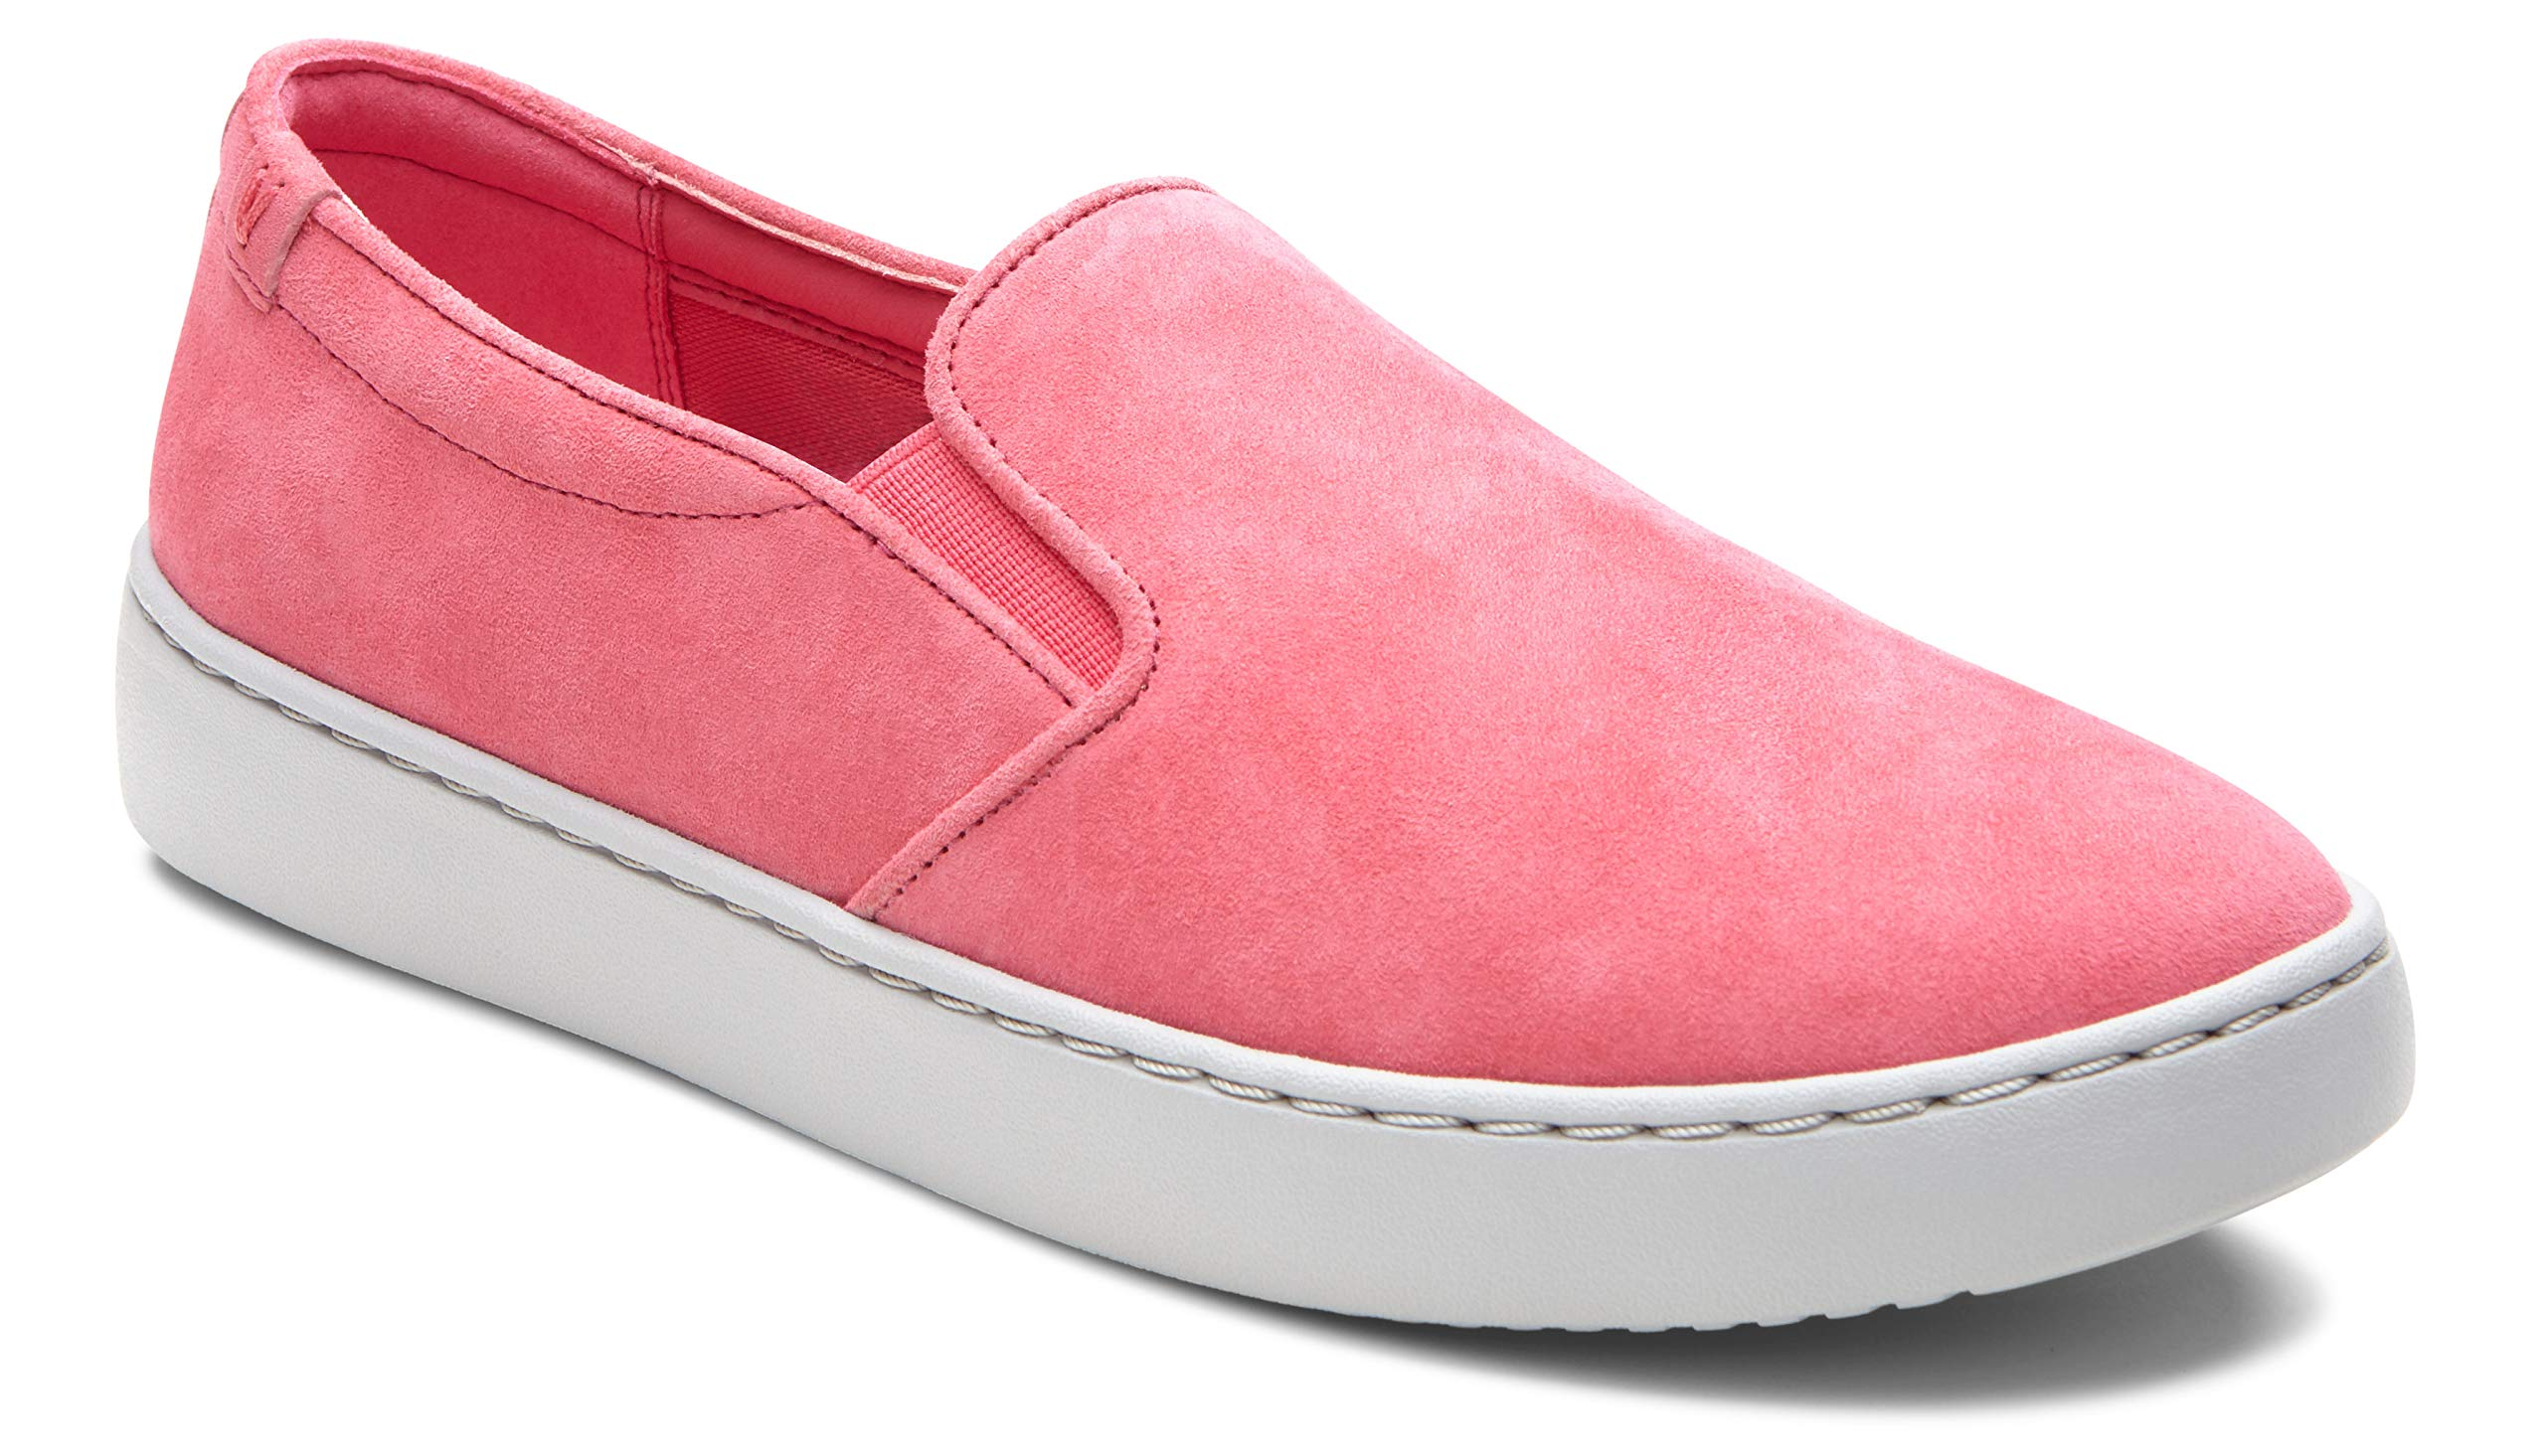 Vioinc Women's Pro Mahoney Avery Slip-on - Ladies Water Resistant Slip Resistant Service Shoes with Concealed Orthotic Arch Support Sorbet 9.5 M US